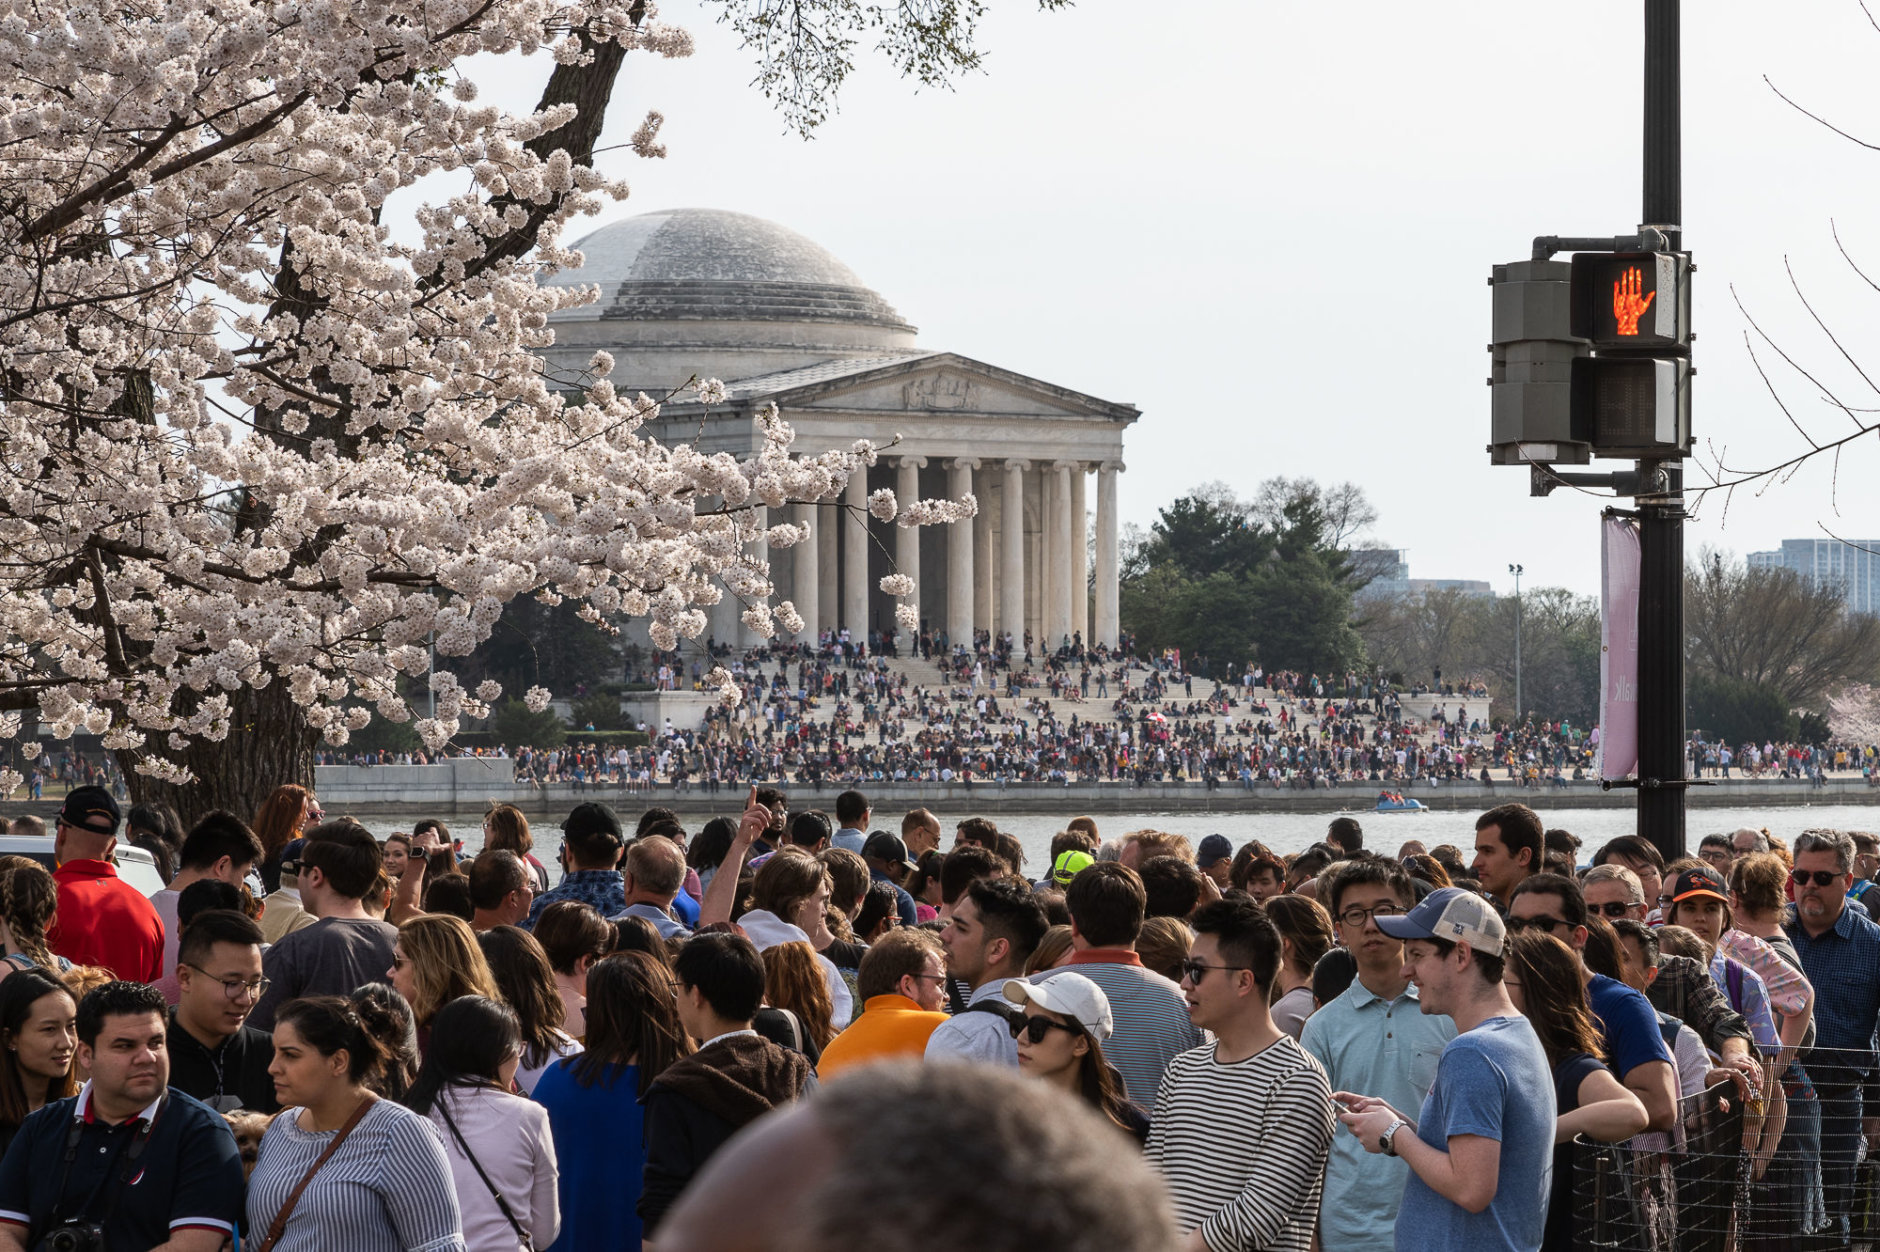 The Jefferson Memorial is seen from the eastern shore of the Tidal Basin on March 30. Though not the only place to take in the blossoms, the Tidal Basin is by far the most popular — and with excellent weather on Sunday evening, parts of the area were standing room only. (WTOP/Alejandro Alvarez)